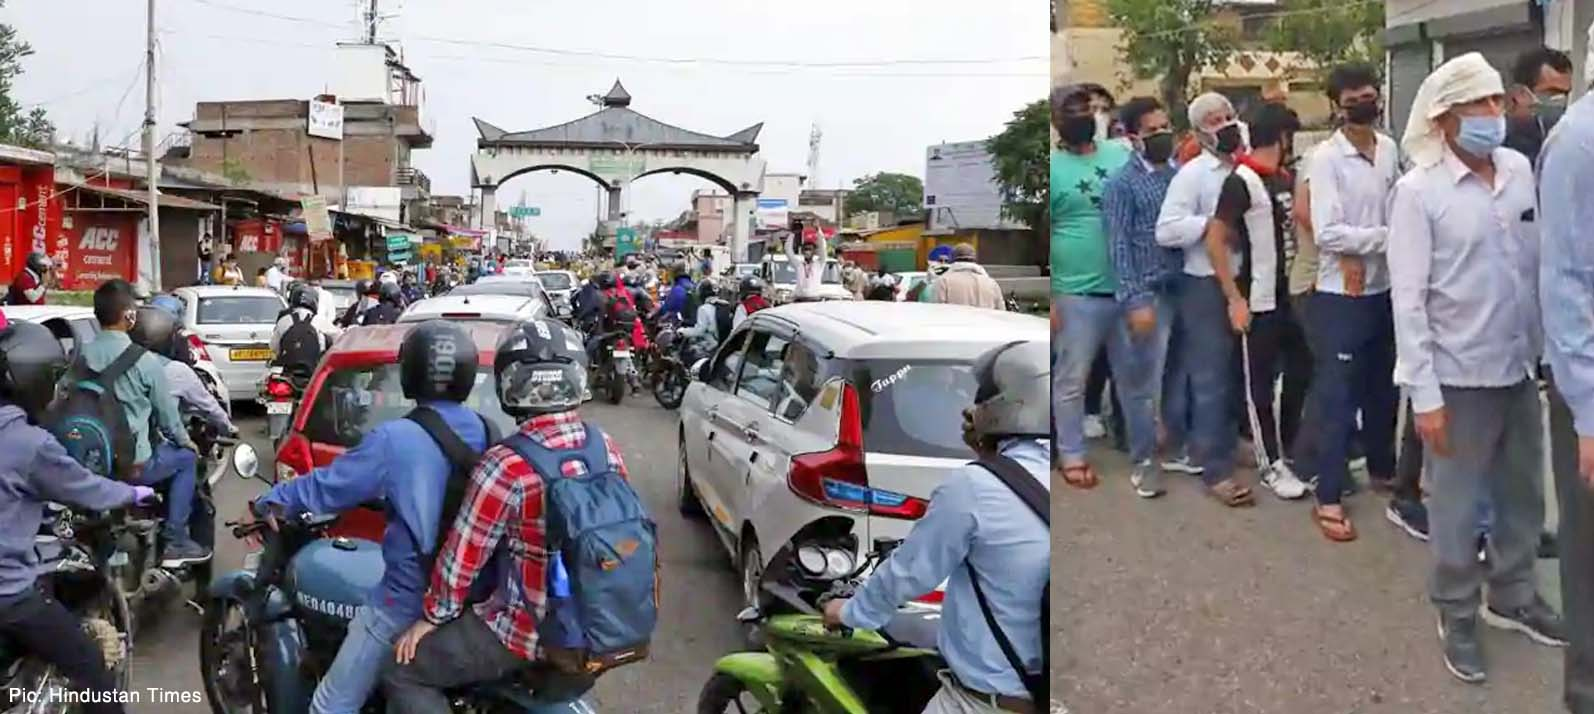 mass entry of people into himachal pradesh